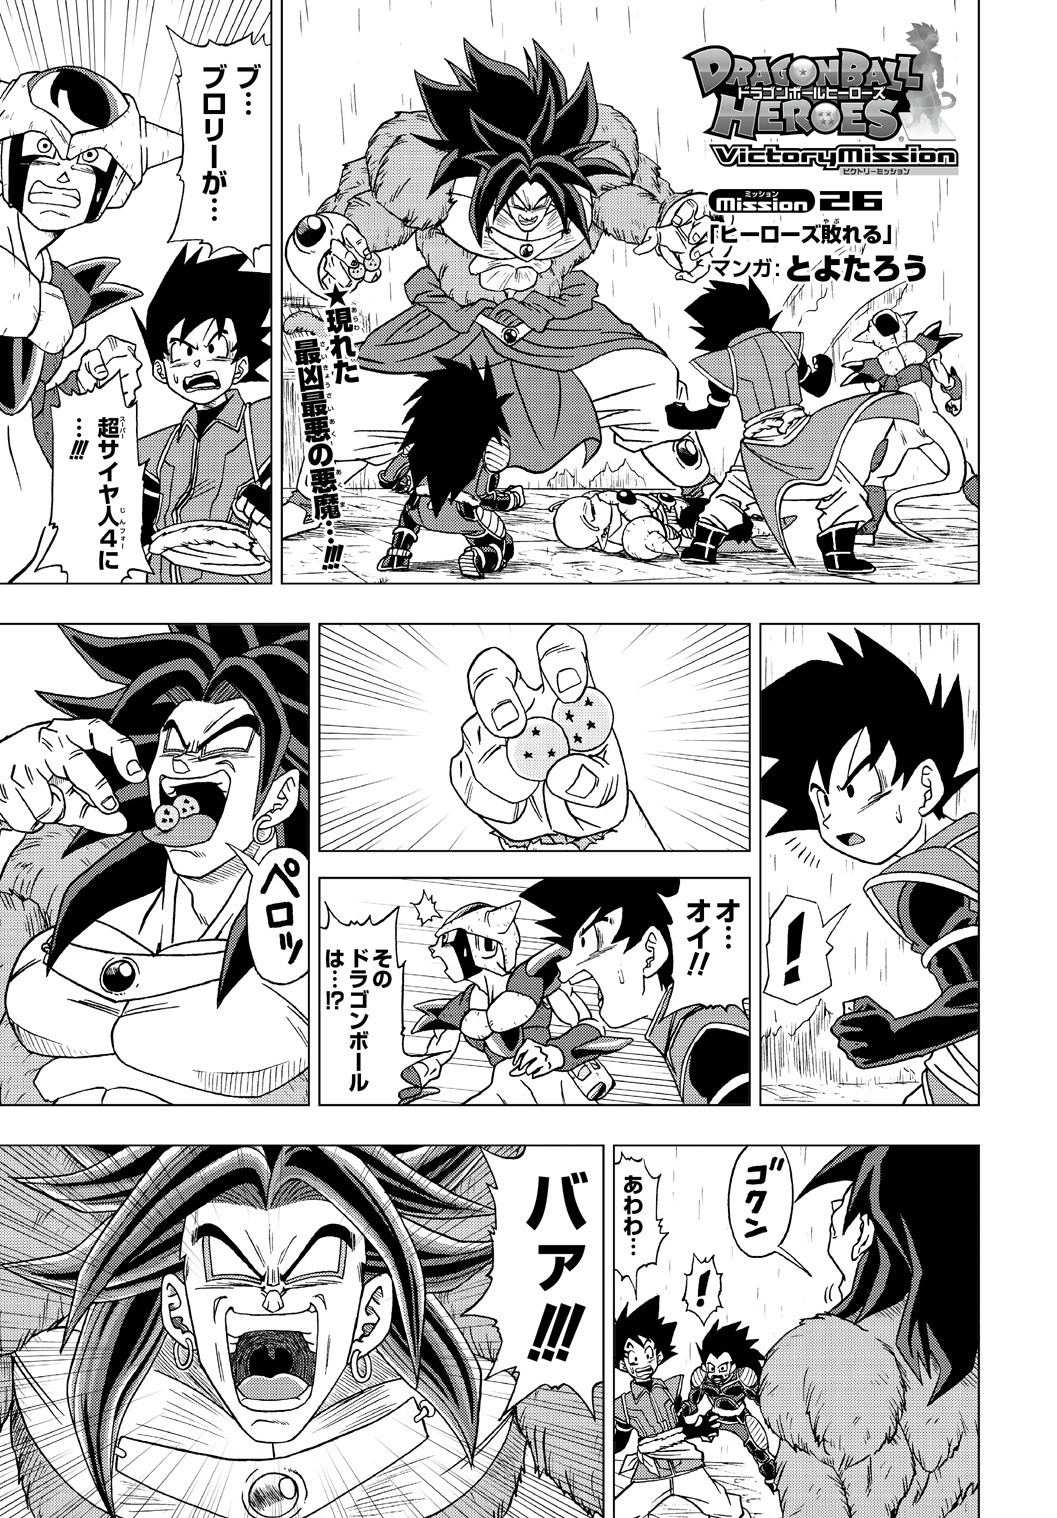 Dragon Ball Heroes Victory Mission Chapitre 026